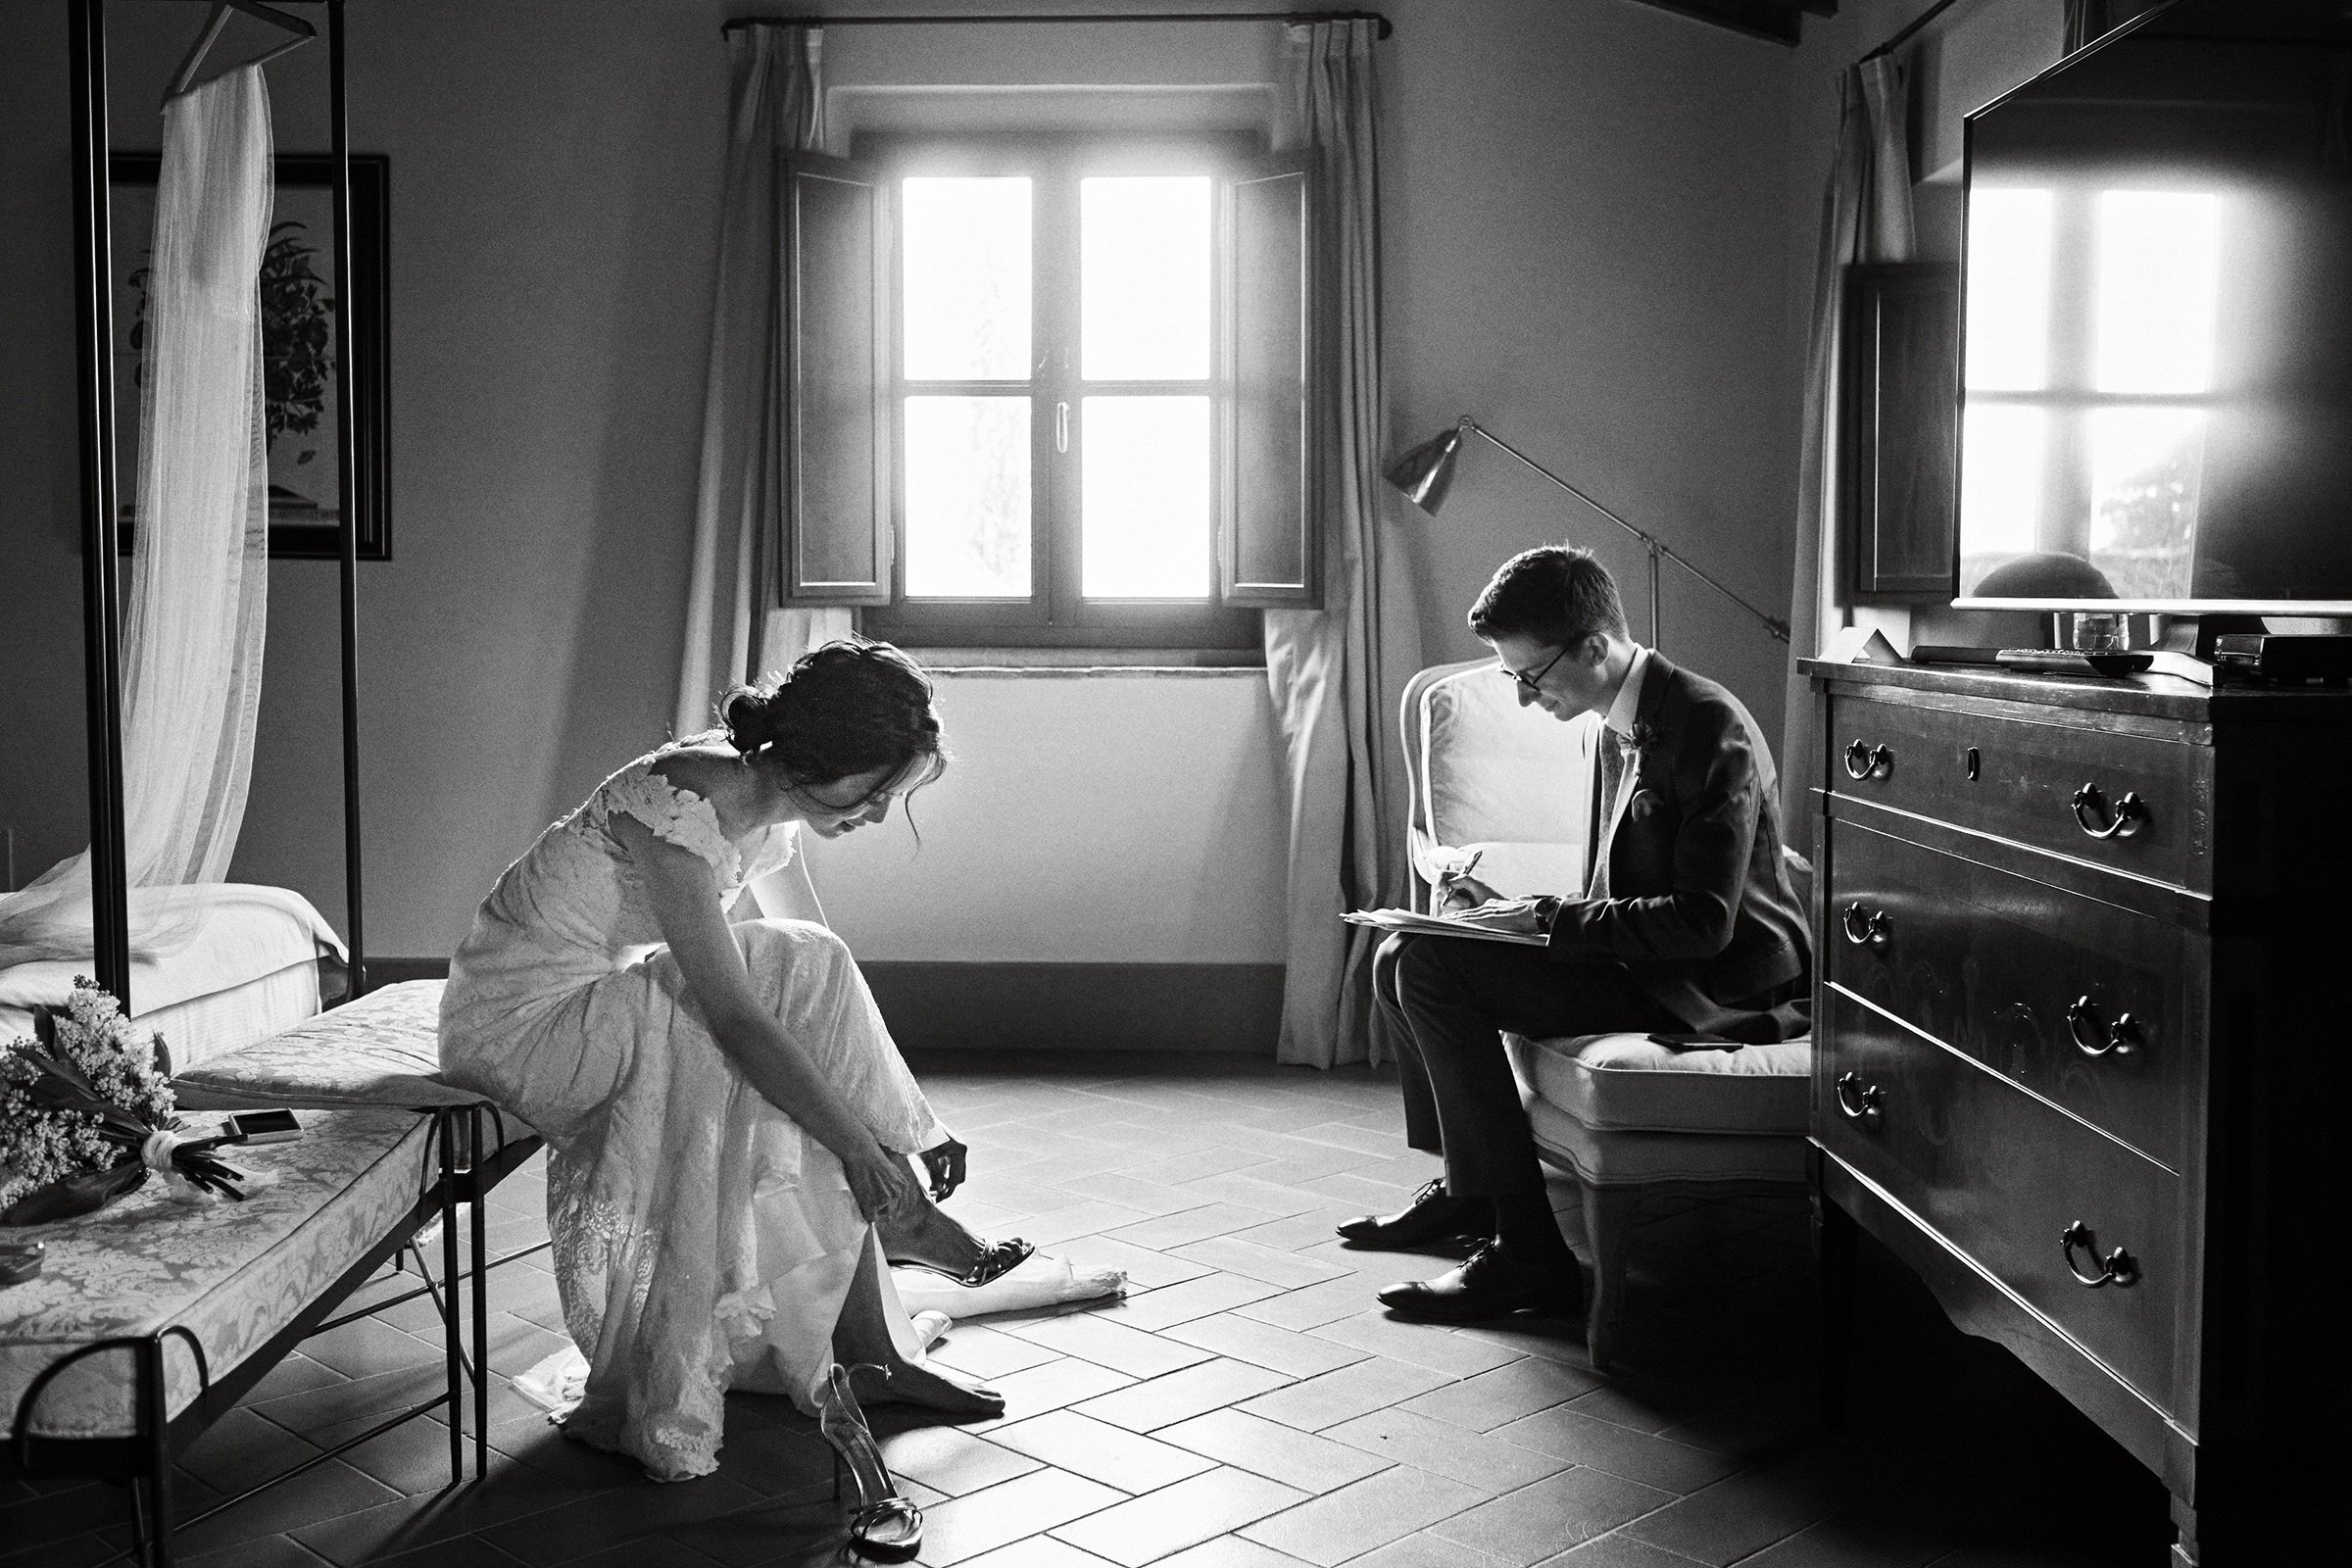 Seated bride and groom getting ready separately - photo by Andrea Bagnasco Fotografie